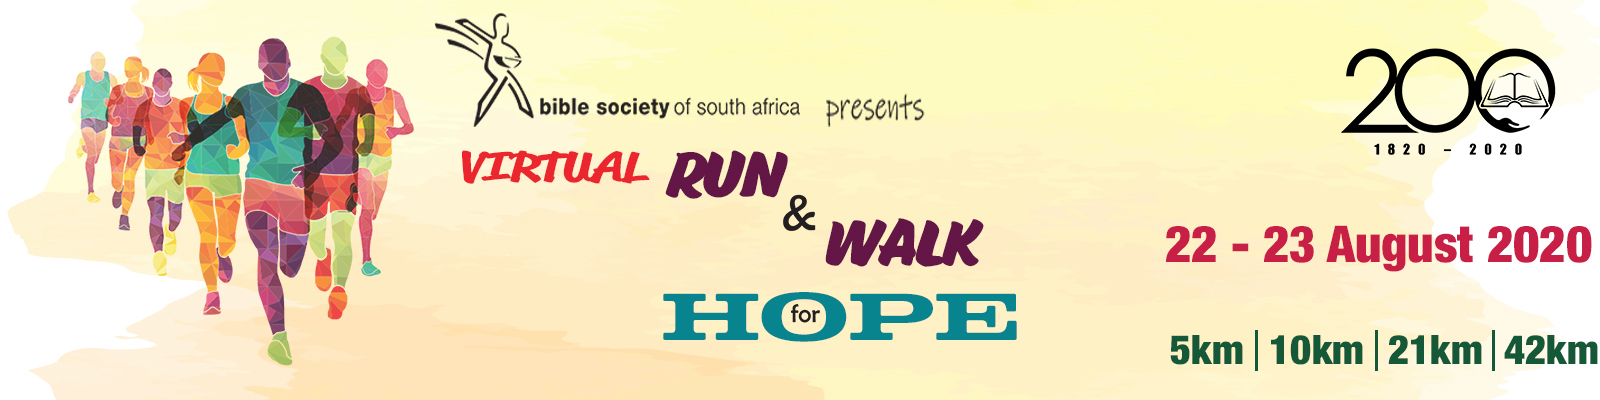 Run-Walk-for-Hope-Web-Header Run & Walk for Hope 5km Results